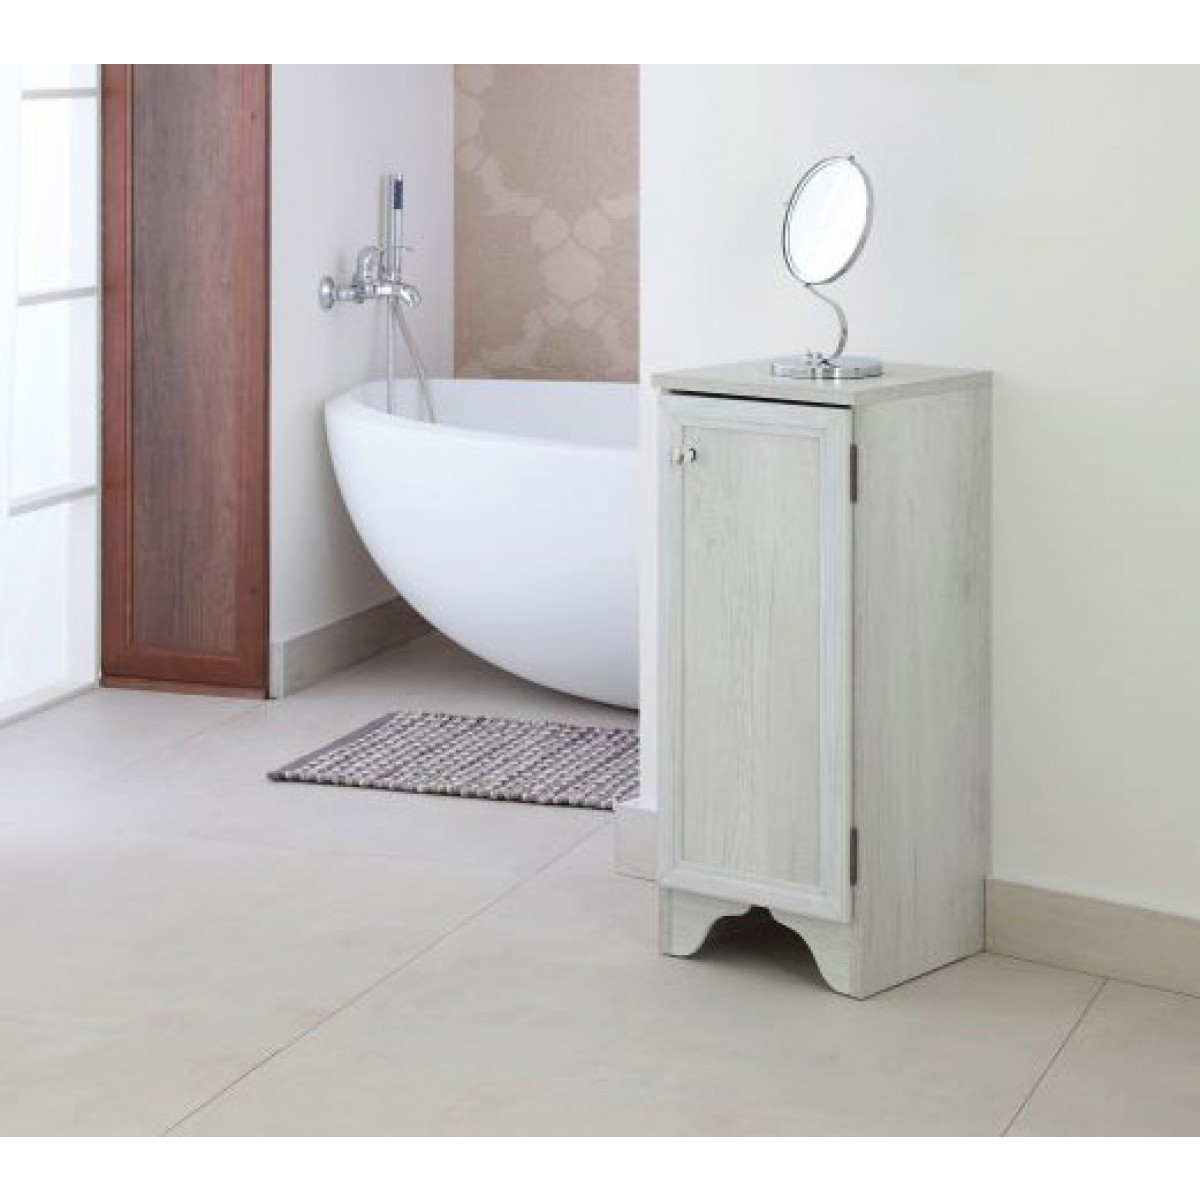 Mobiletto bagno in arte povera con anta cm 33x33x78h for Mobiletto design